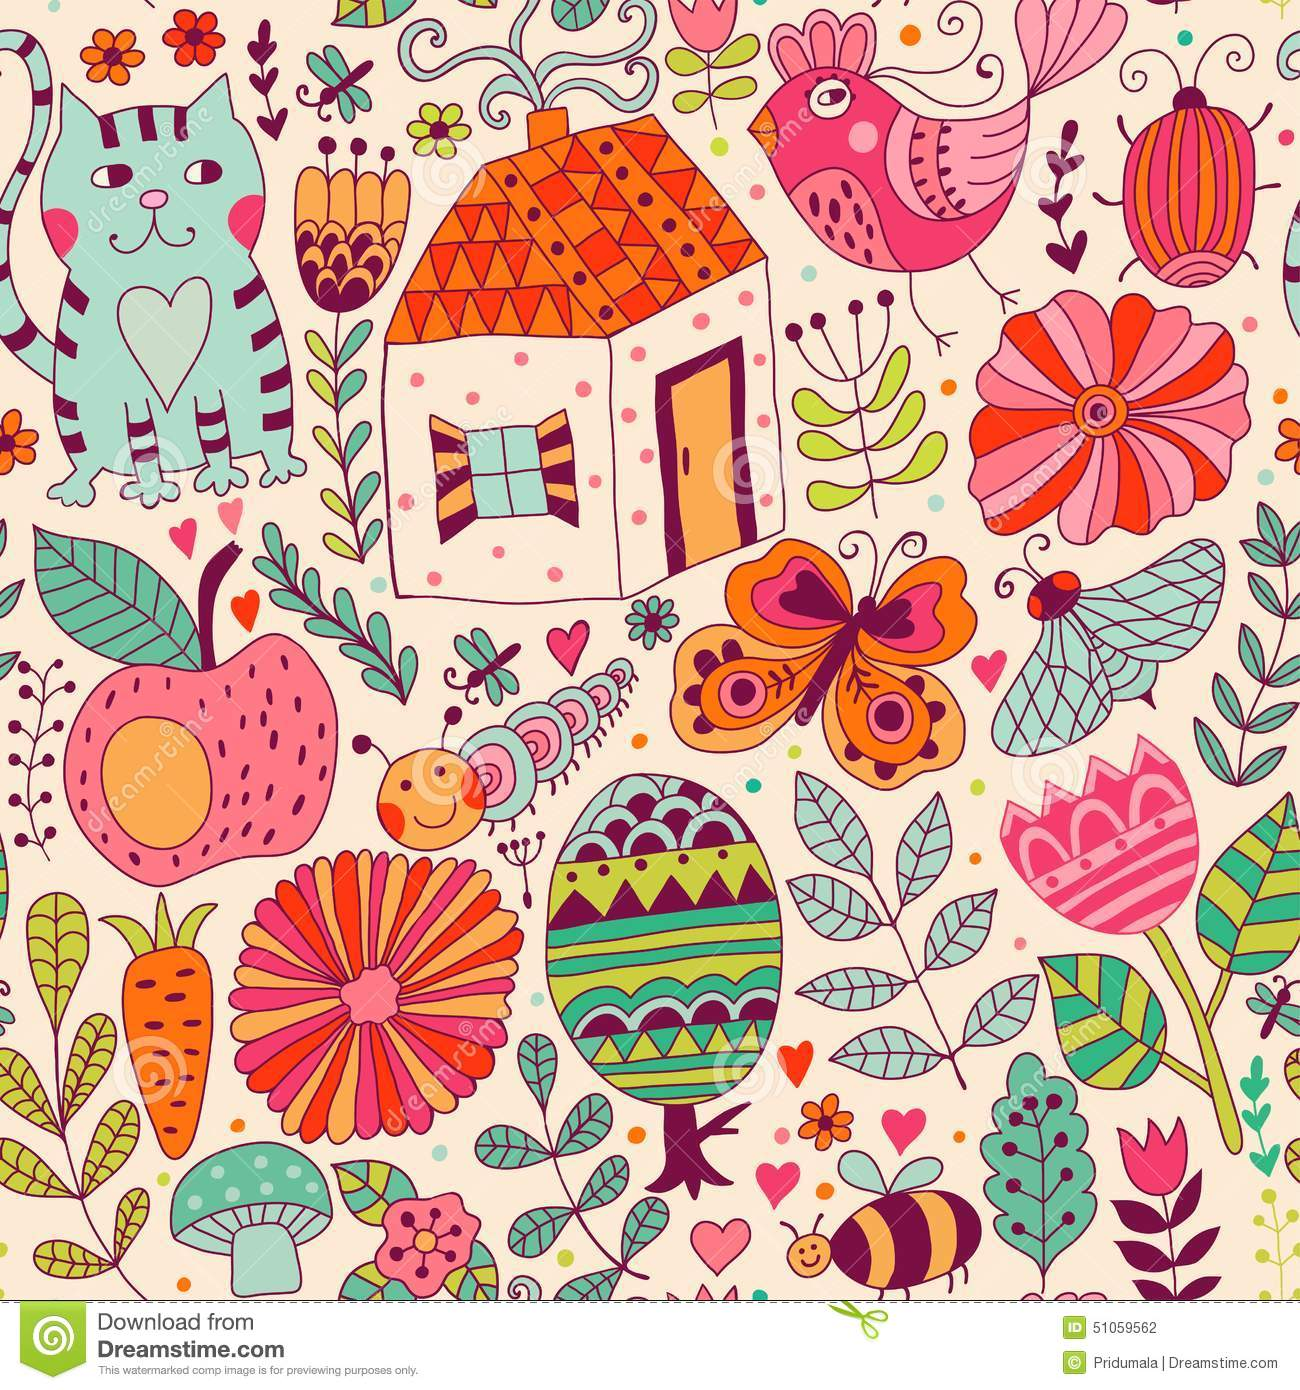 Vector Seamless Pattern Doodling Design Hand Draw Flowers And Leafs Kids Illustration Cute Background Color Doodle